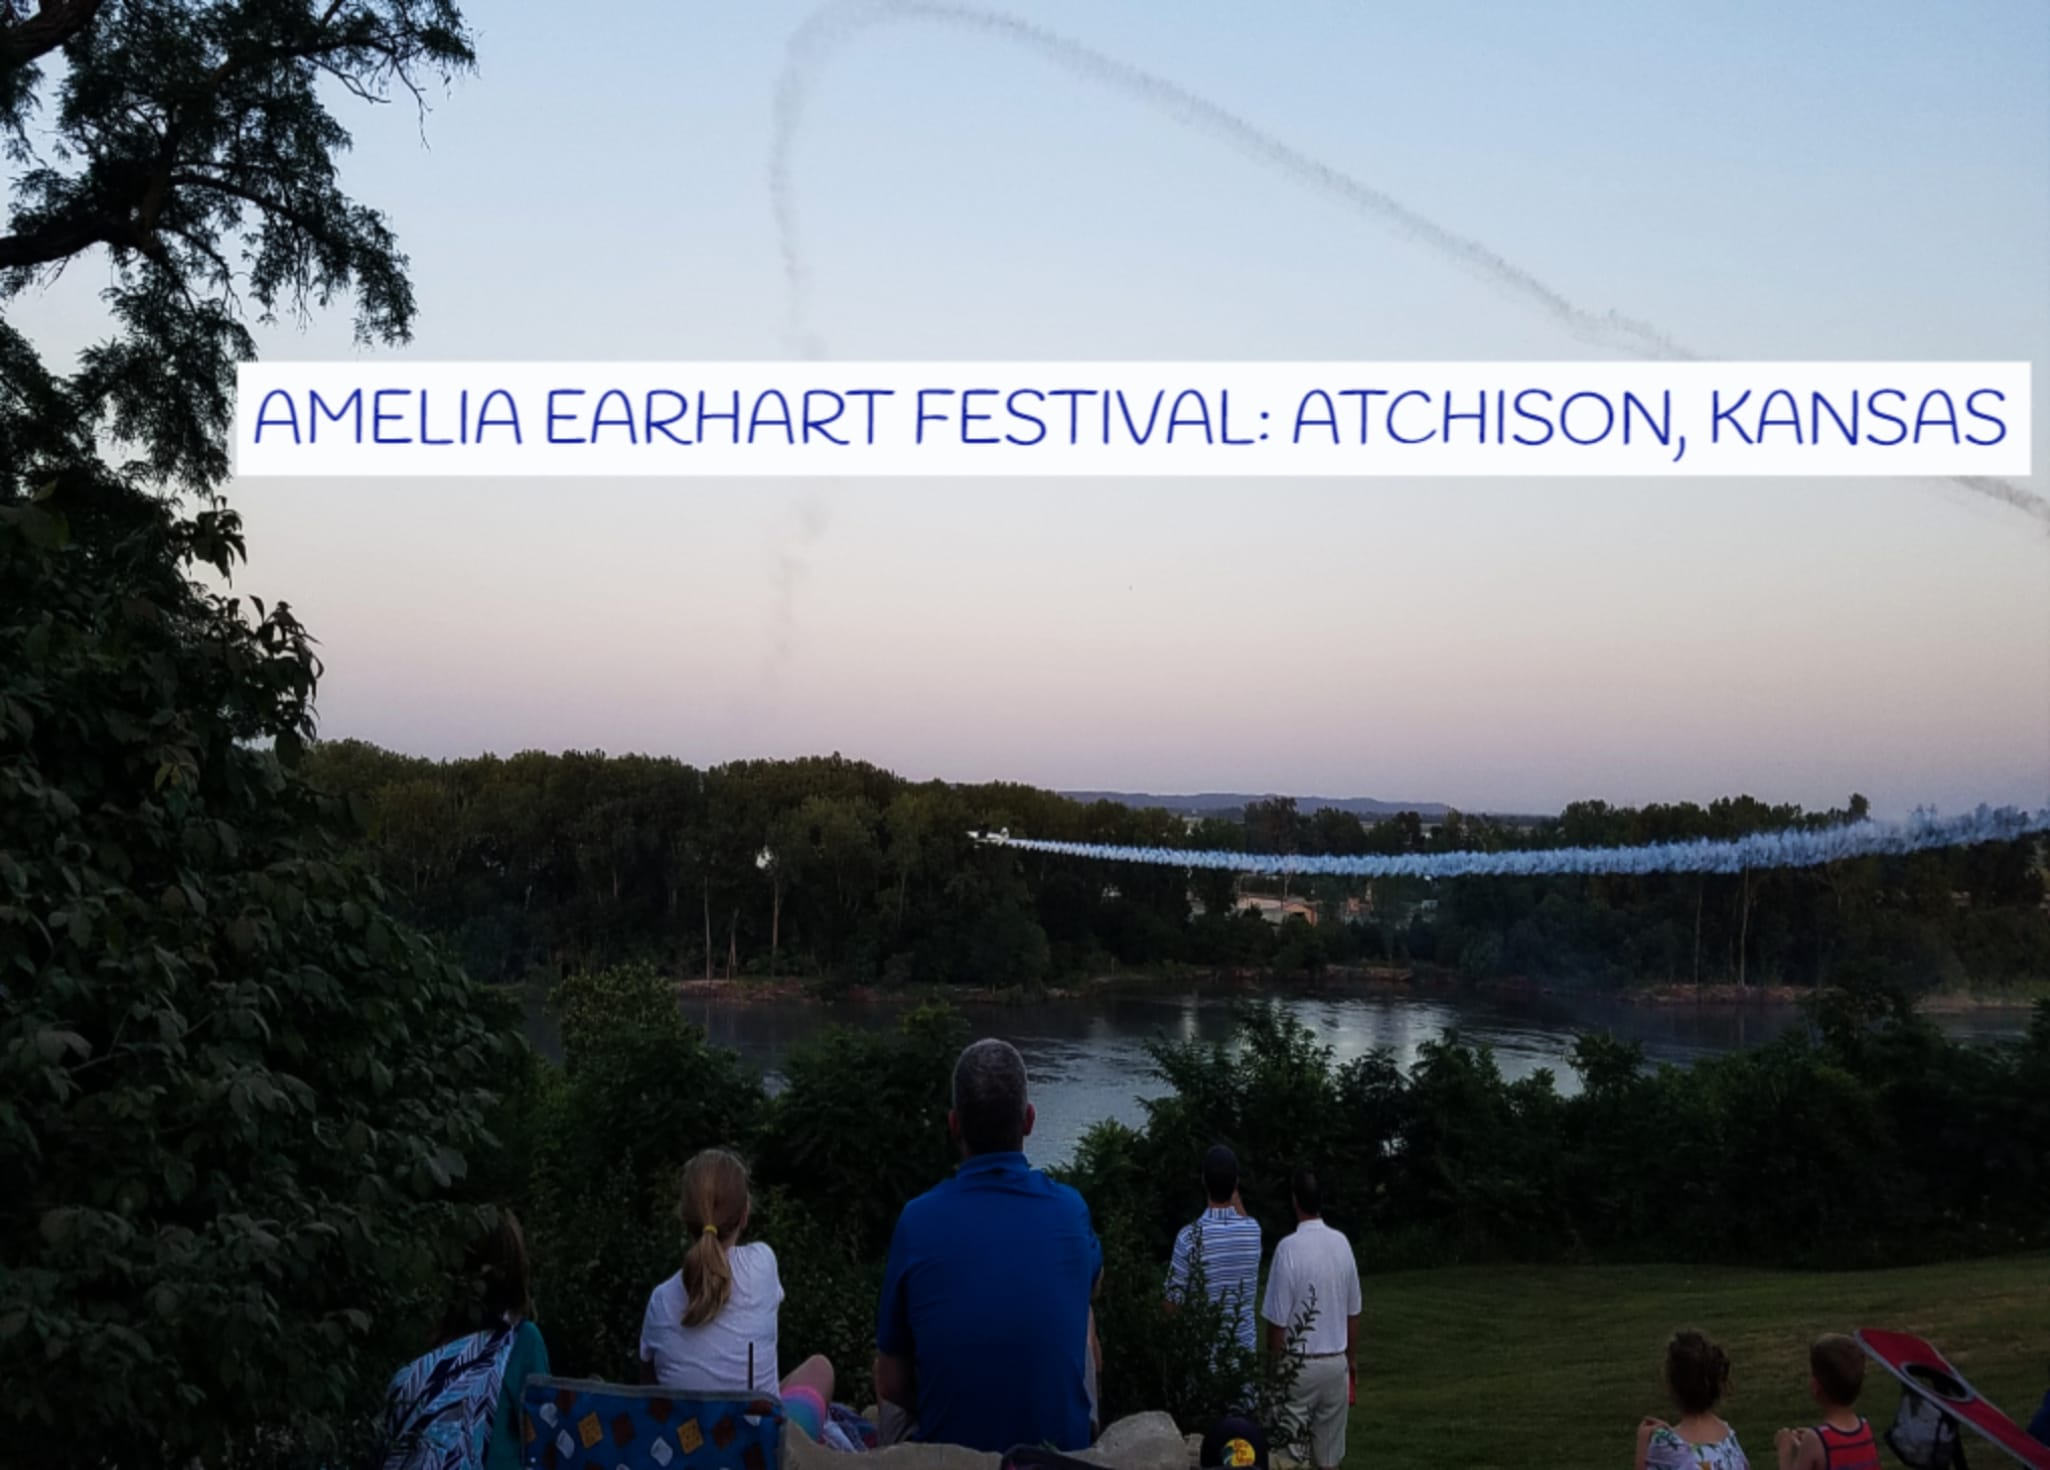 Highlights Of The Amelia Earhart Days In Atchison, Kansas